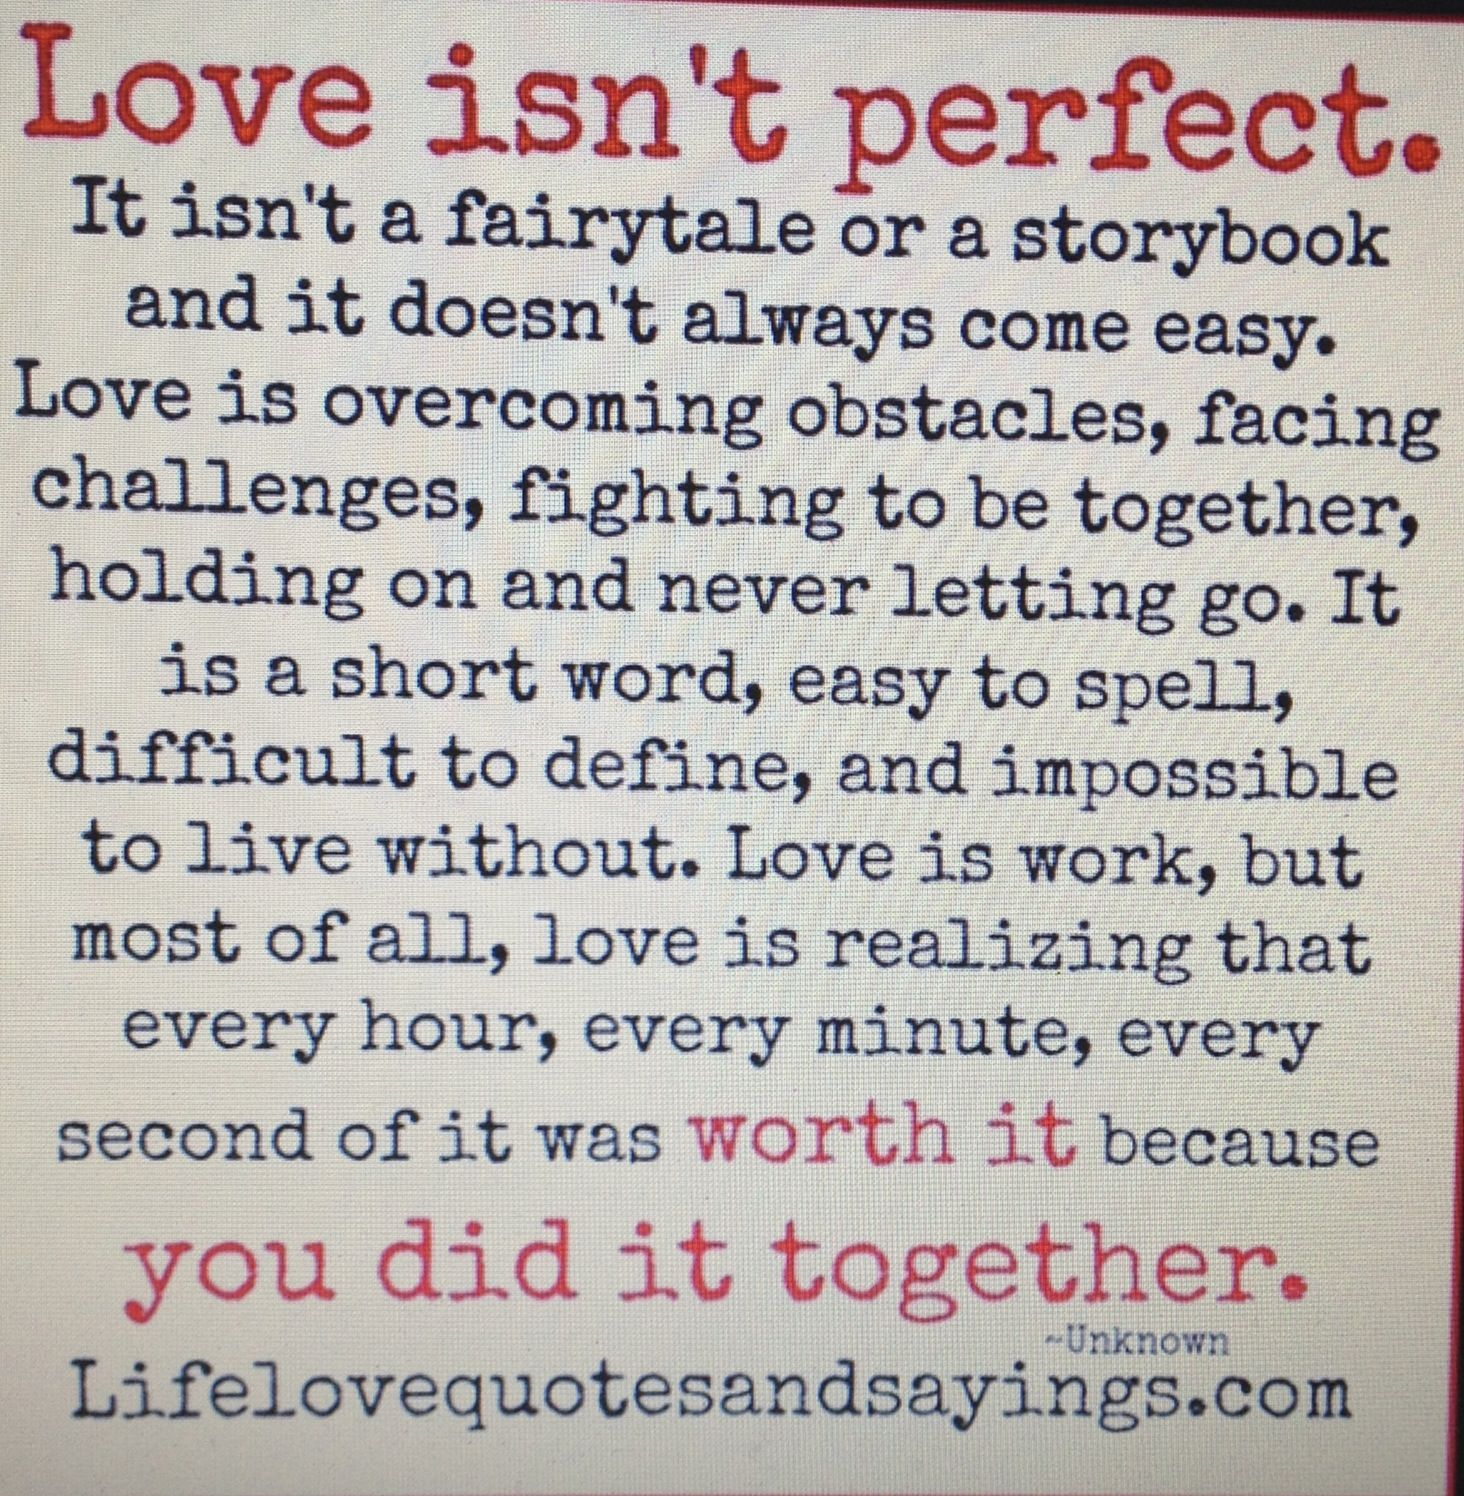 Pin By Lindsay On Quotes Wedding Quotes Funny Love Quotes For Wedding Wedding Speech Quotes